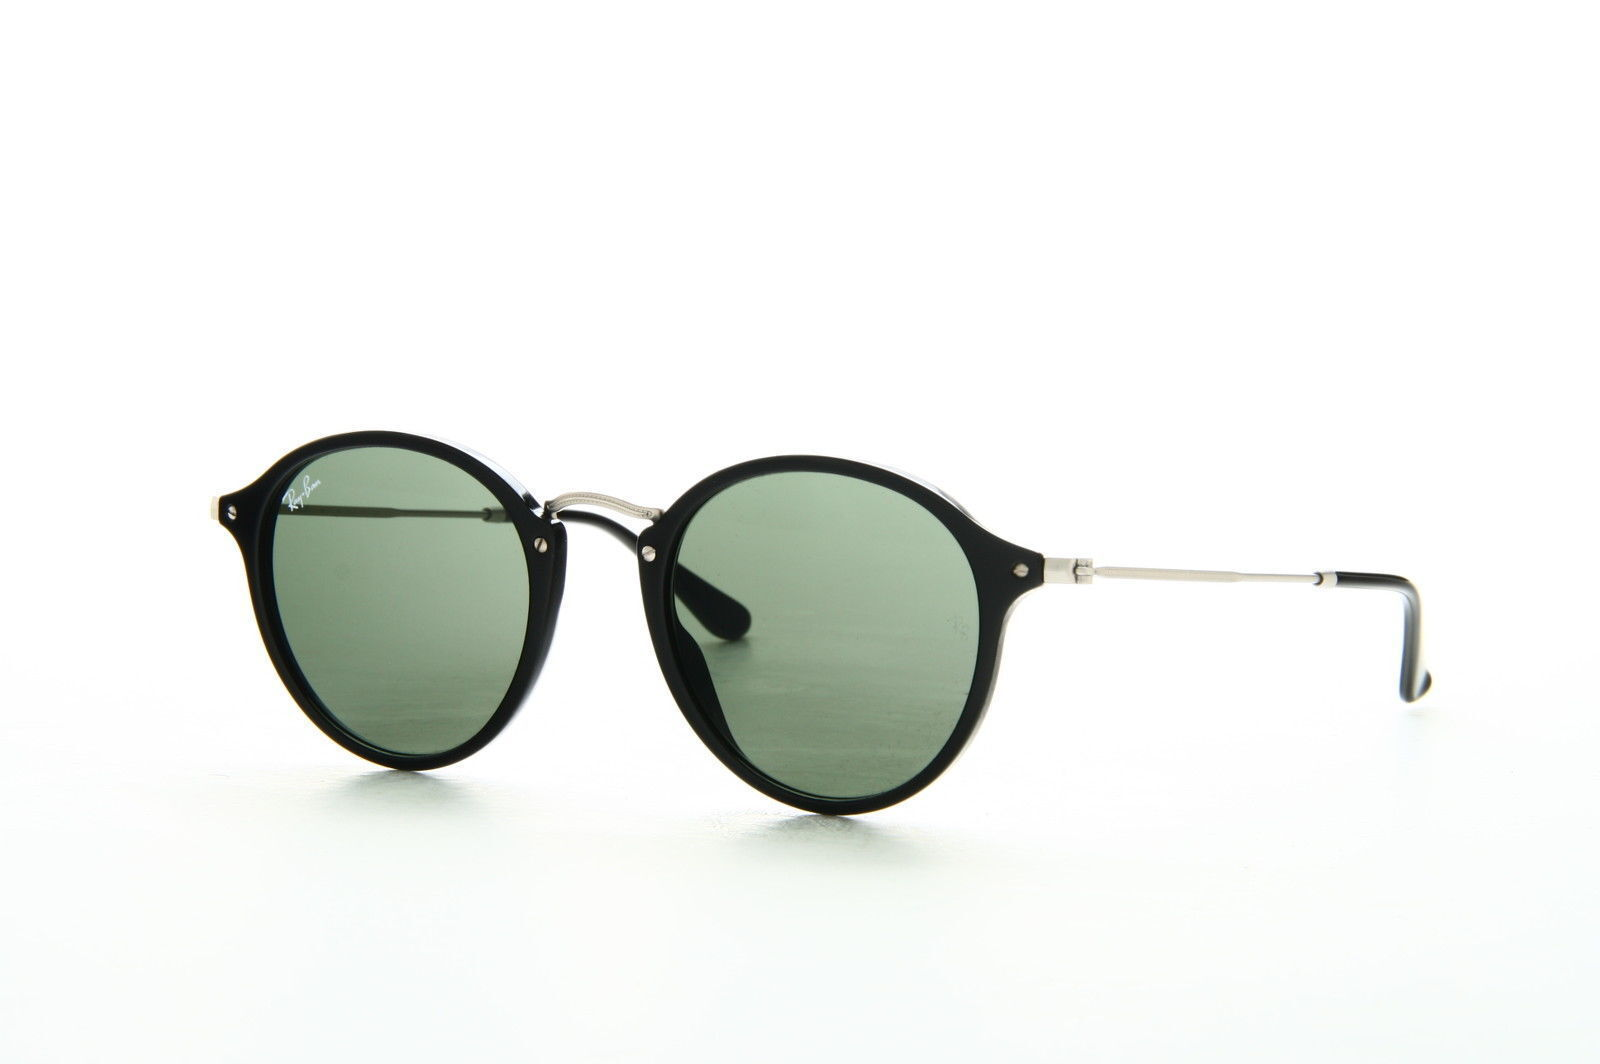 1d9e8beef695b Ray-Ban Round Fleck Sunglasses for sale online